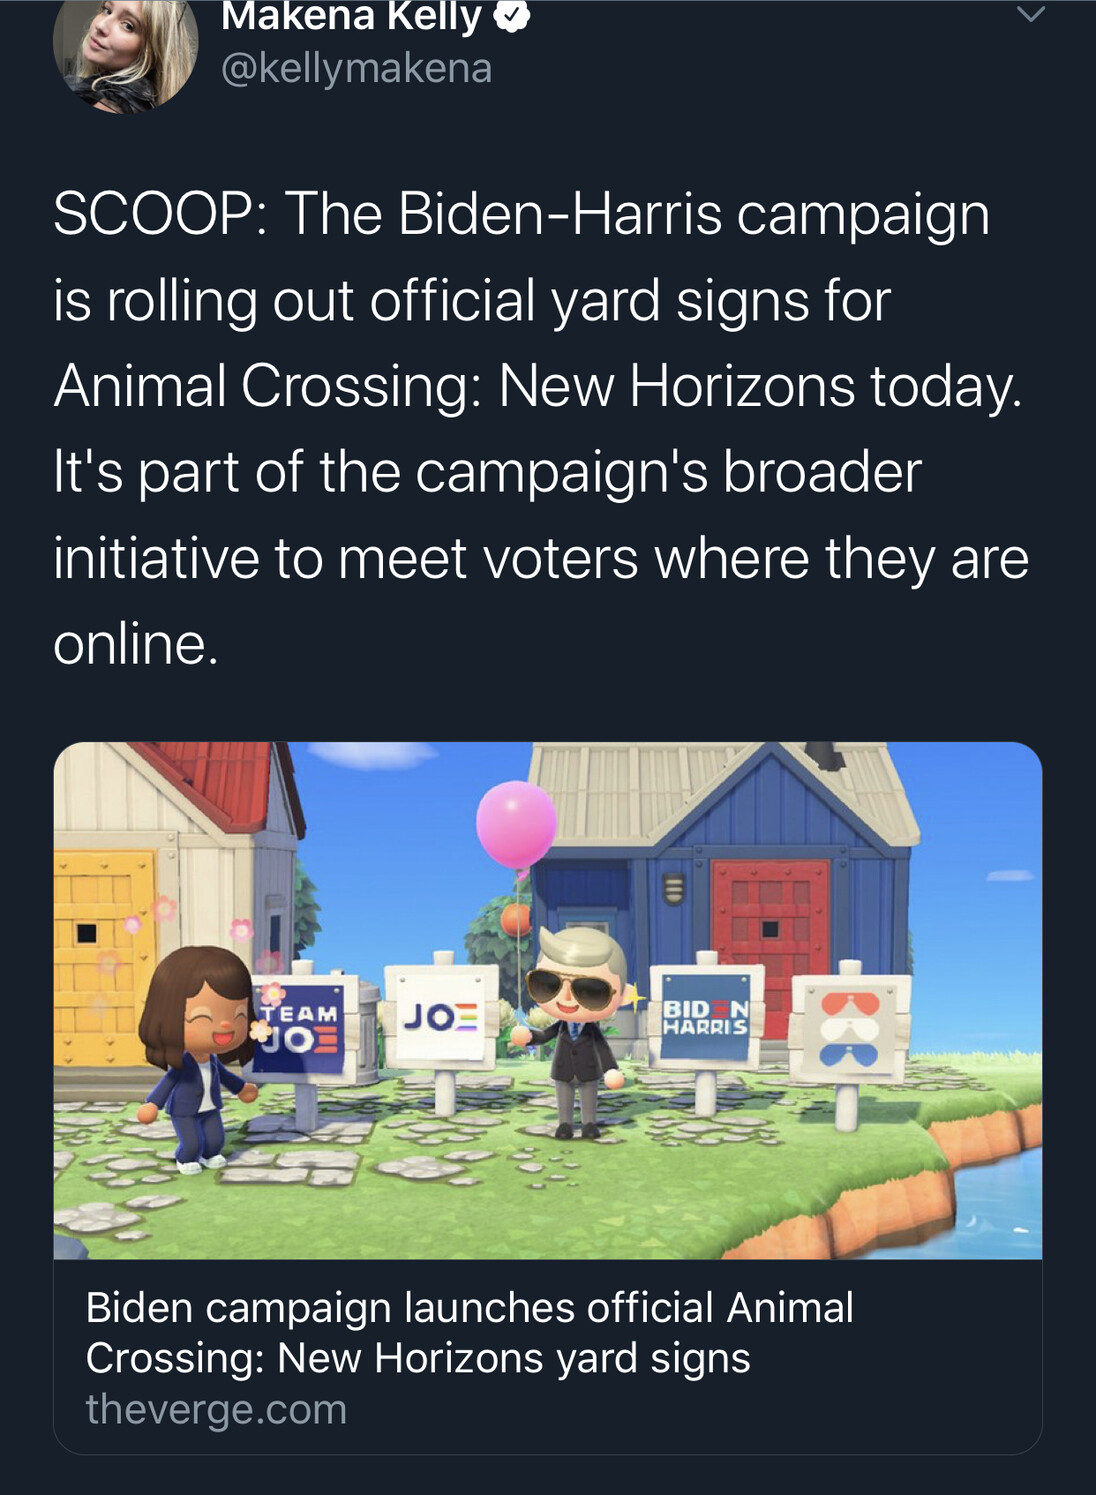 SCOOP: The Biden-Harris campaign is rolling out official yard signs for Animal Crossing: New Horizons today. It's part of the campaign's broader initiative to meet voters where they are online.